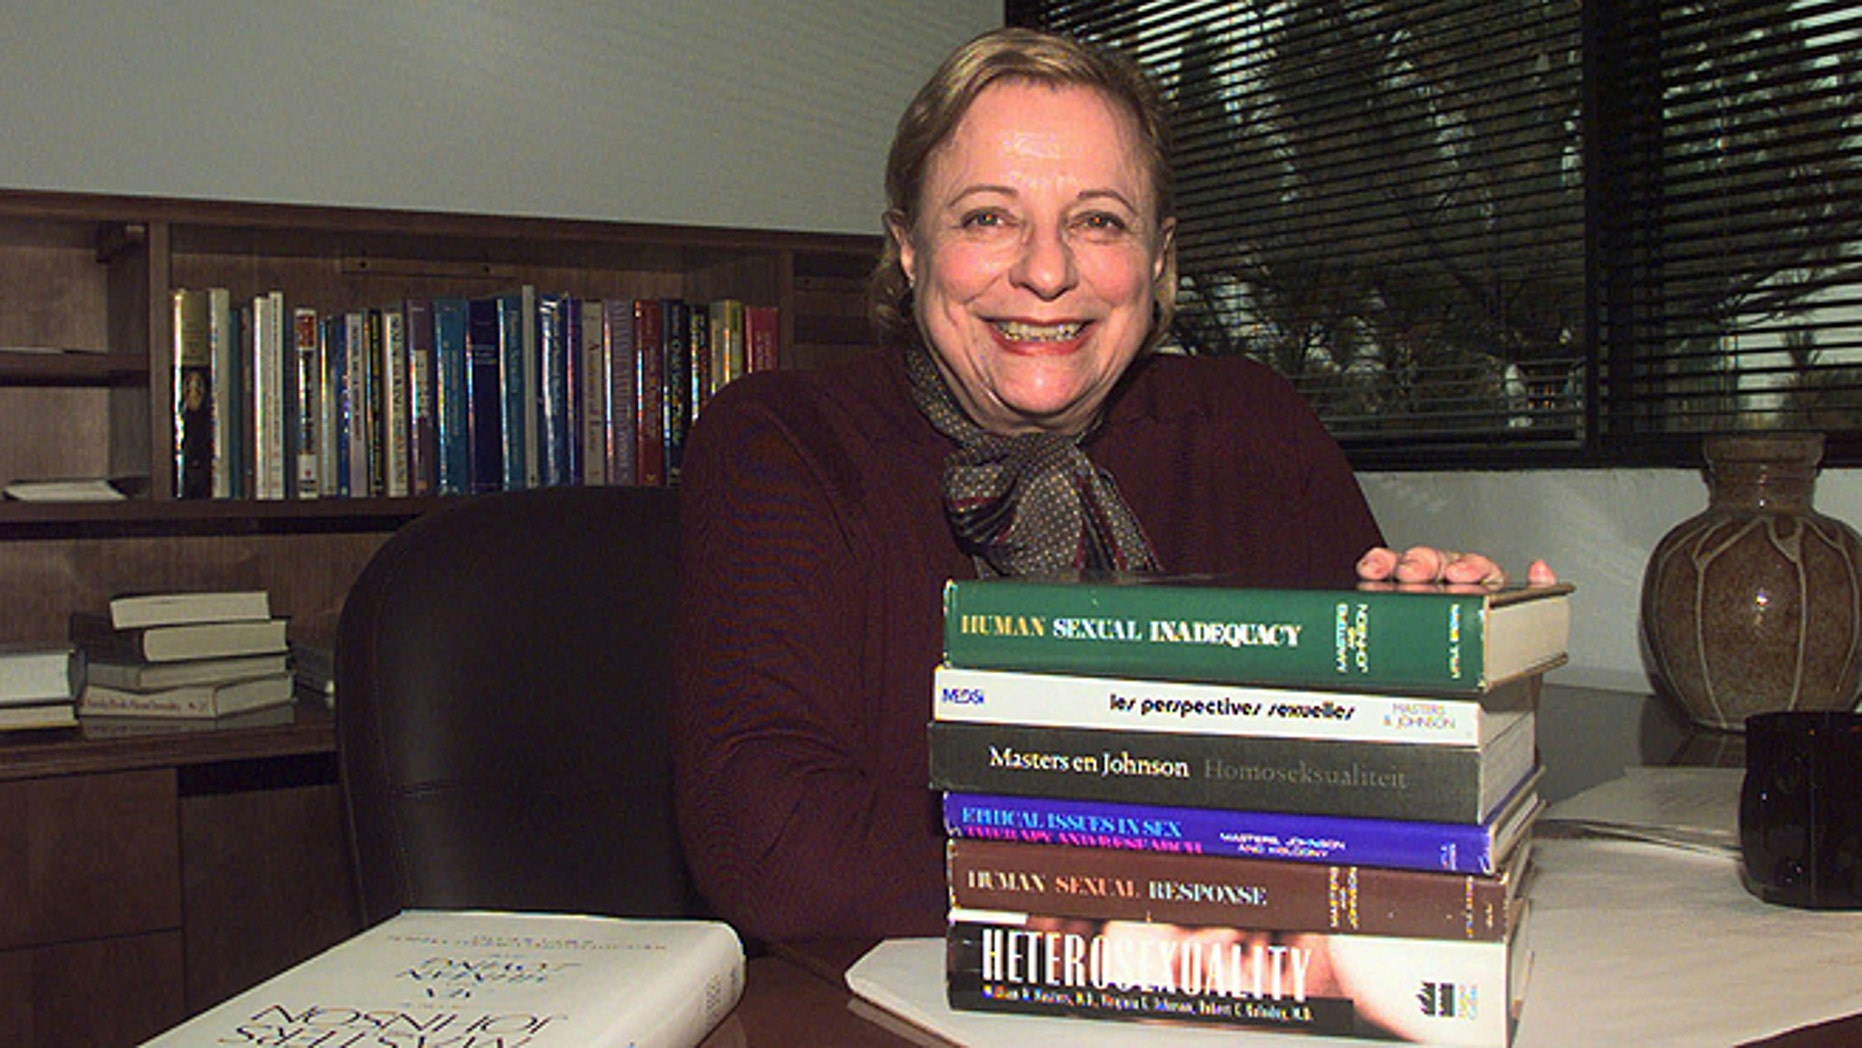 Nov. 7, 1997: Virginia Johnson Masters poses in her office at the Virginia Johnson Masters Learning Center in Creve Coeur, Mo., with some of the 19 publications that she has written or co-authored with her former husband and former partner Dr. William Masters. (AP/James A. Finley, File)